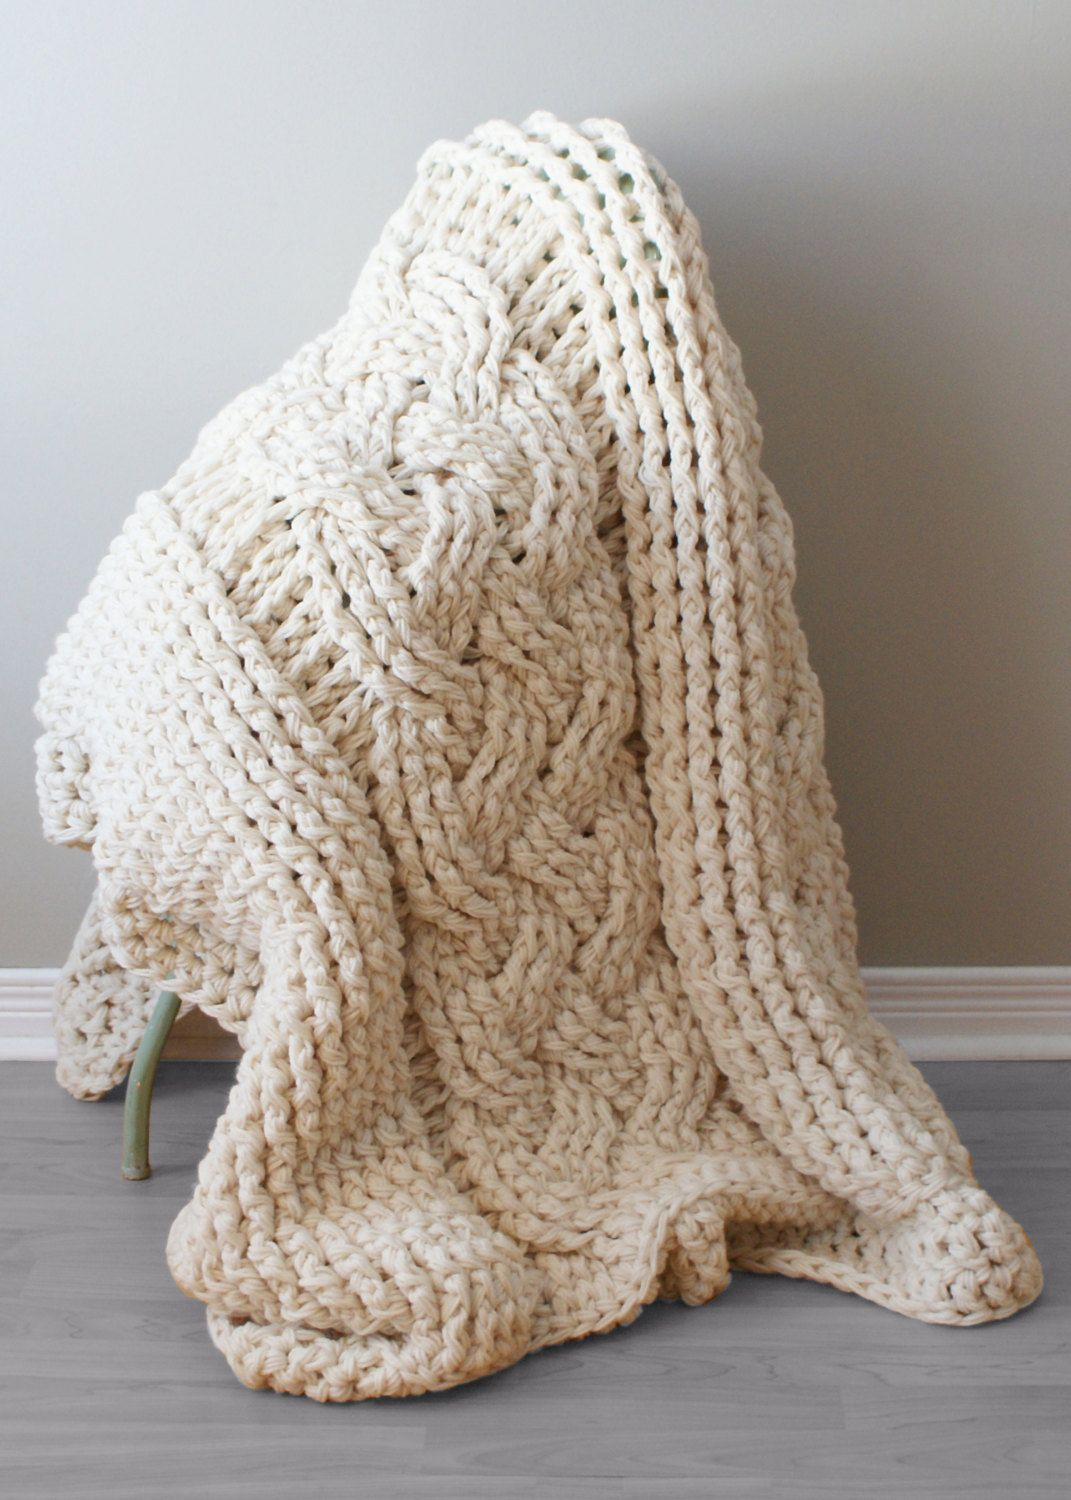 Diy Crochet Pattern Double Cable Crochet Throw Blanket 2014004